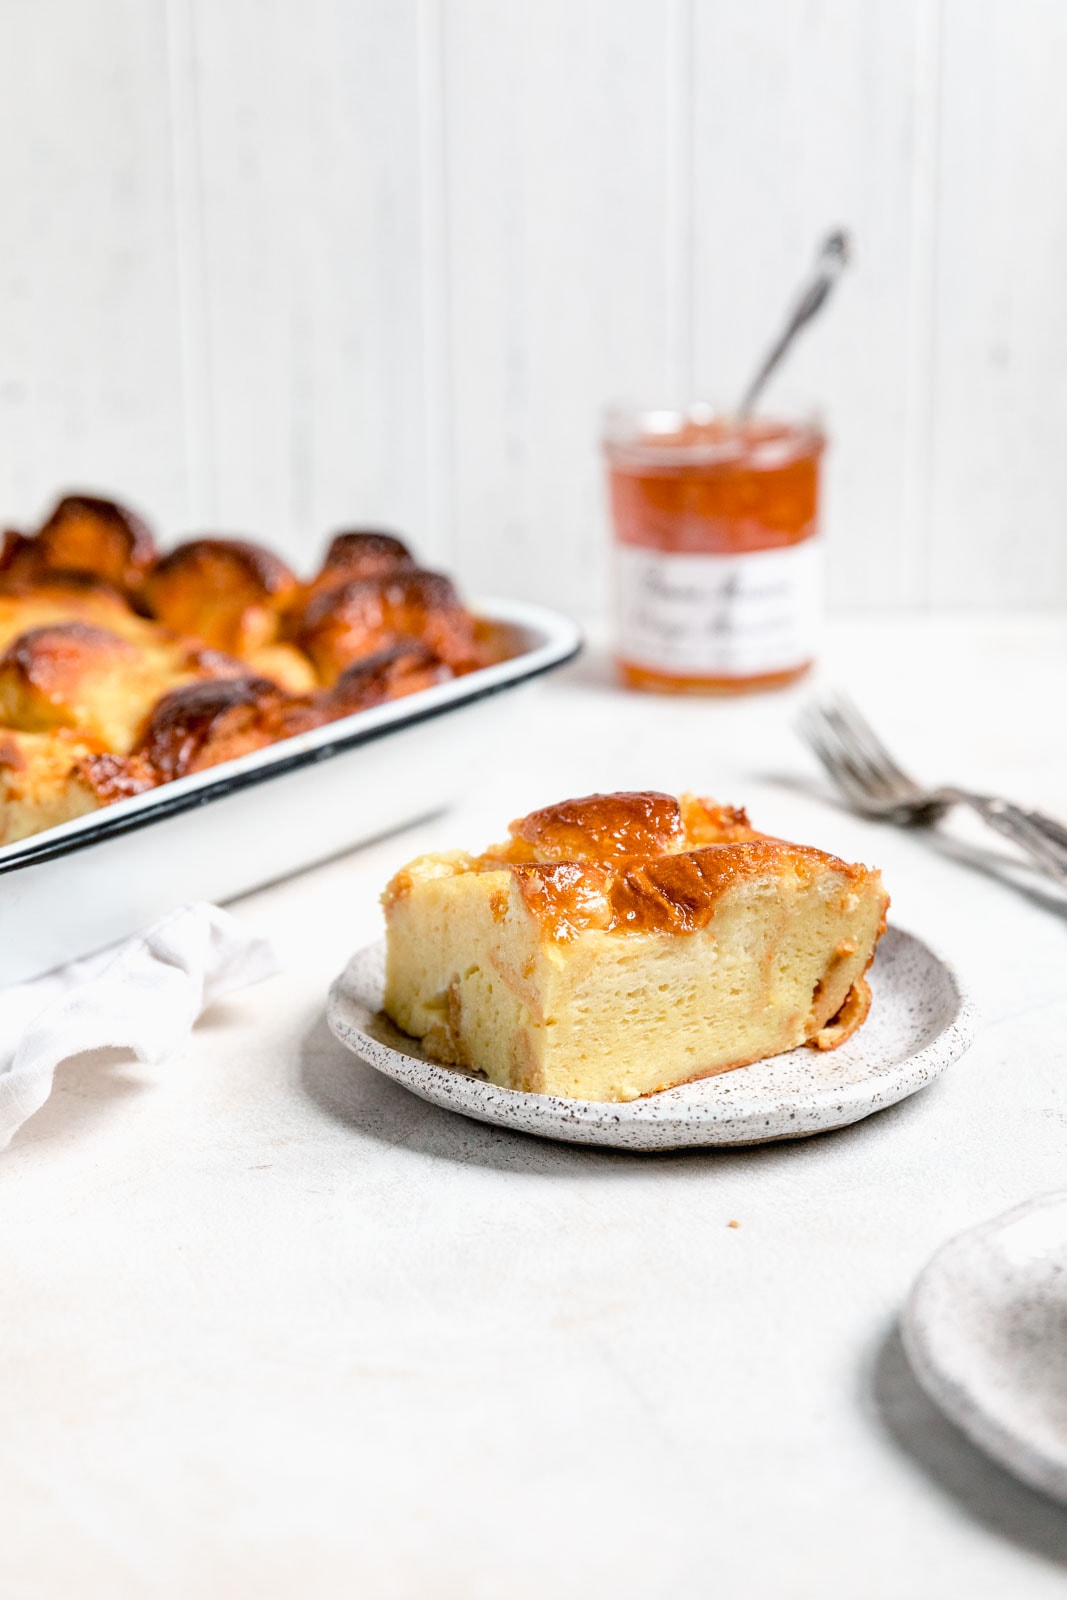 This buttery and bright Orange Marmalade French Toast Bake is perfect for Sunday brunch. It comes together in a pinch and will have everyone coming back for seconds...or thirds :)